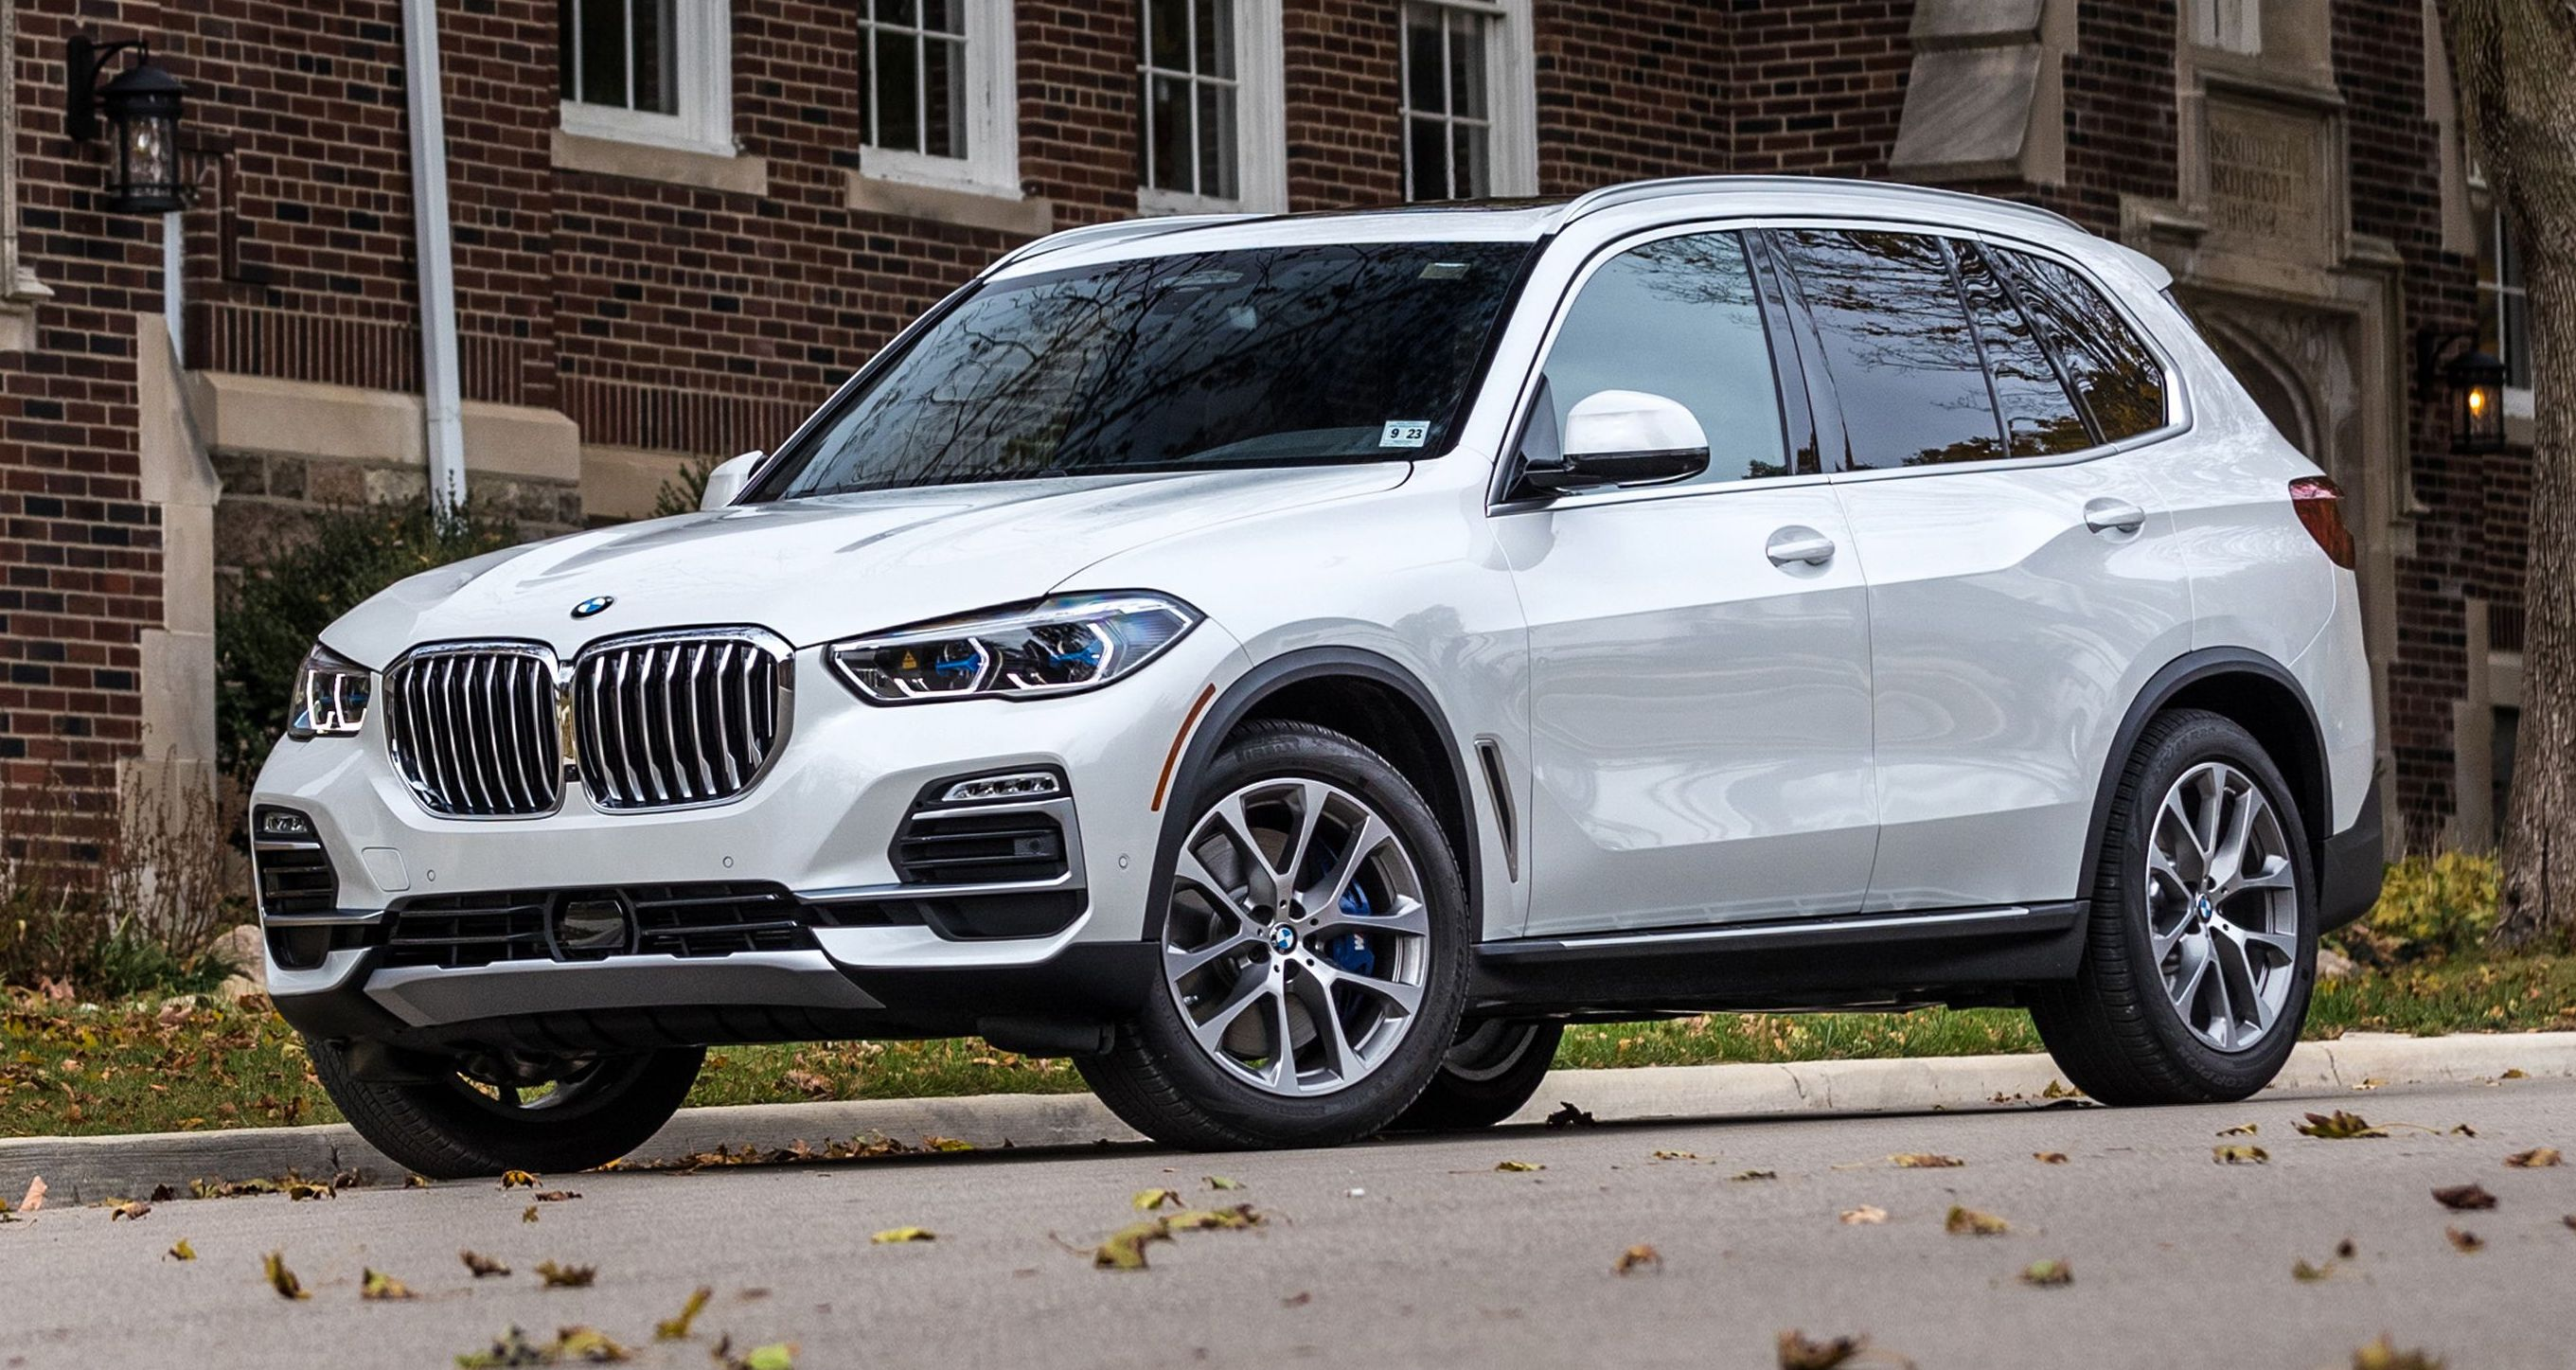 2019-bmw-x5-gallery-lead-1544808509